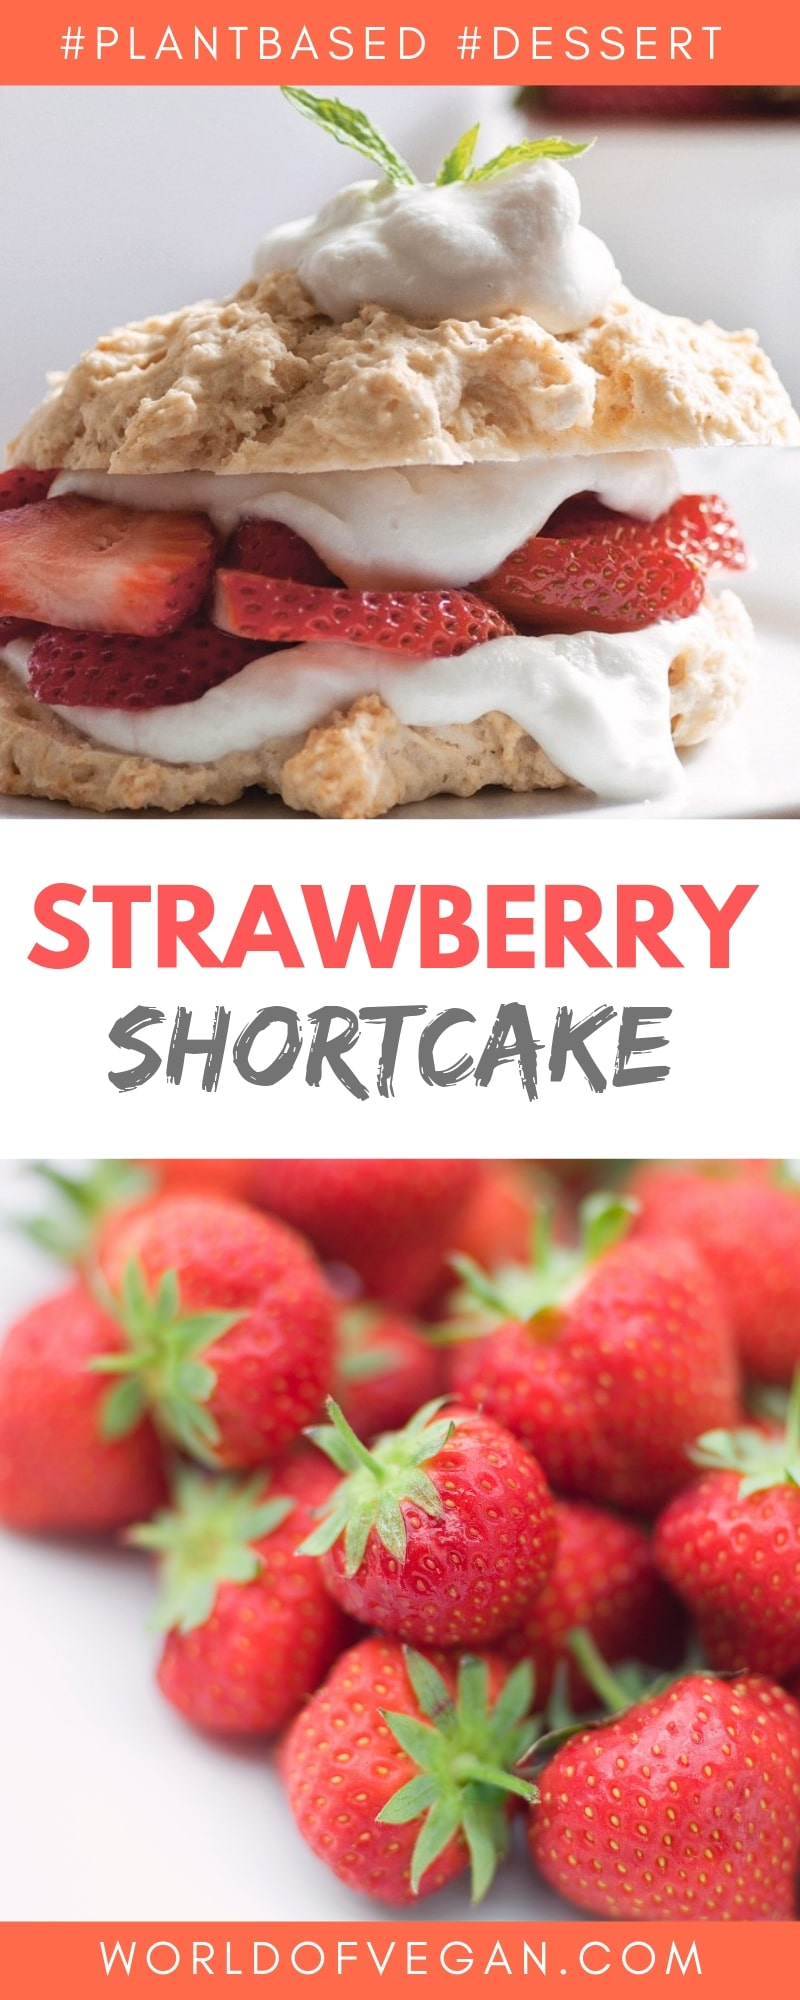 Easy Vegan Strawberry Shortcake Recipe | WorldofVegan.com | #shortcake #cake #picnic #strawberry #tea #party #worldofvegan